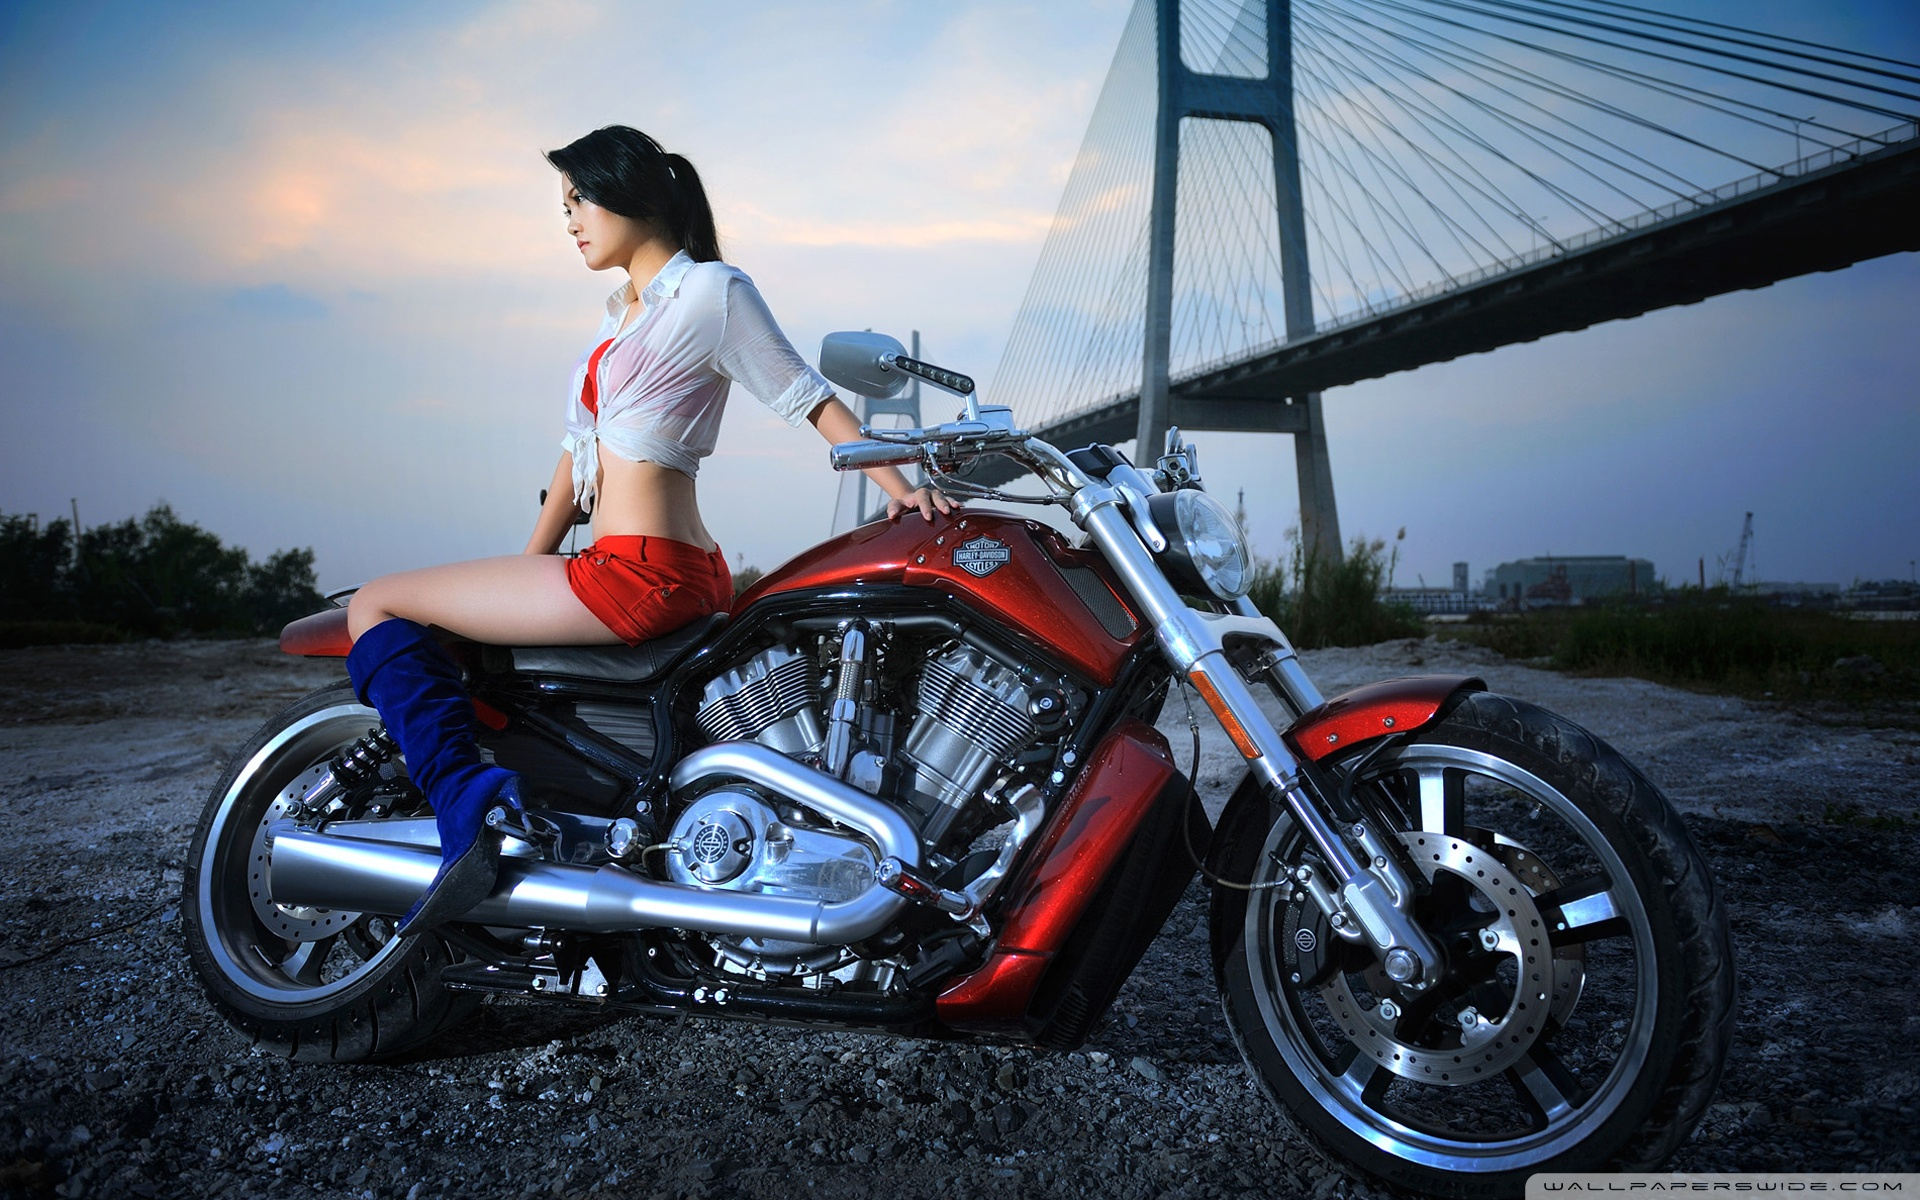 Girls and bikes wallpapers nude babes and motorcycles